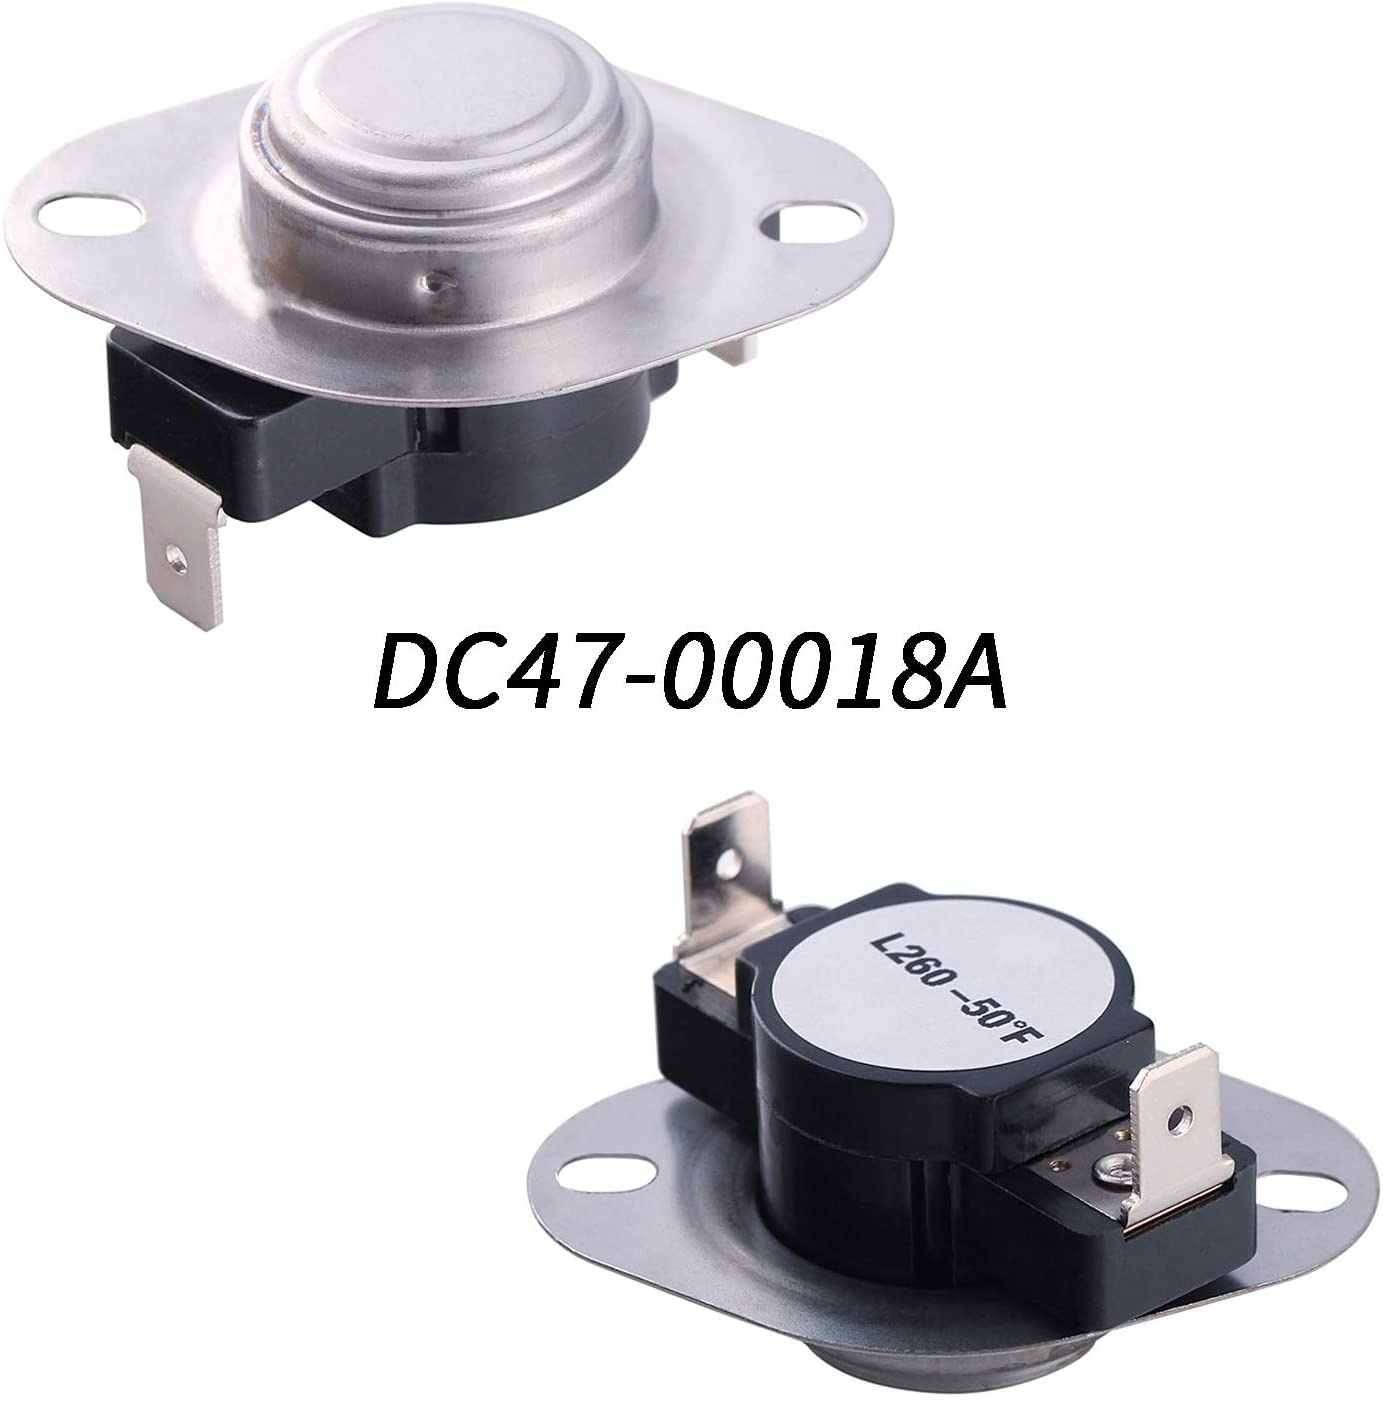 Dryer Heating Element (DC47-00019A), (DC96-00887A and DC47-00016A) Thermal Fuse, (DC32-00007A and DC47-00018A ) Thermistor Kit